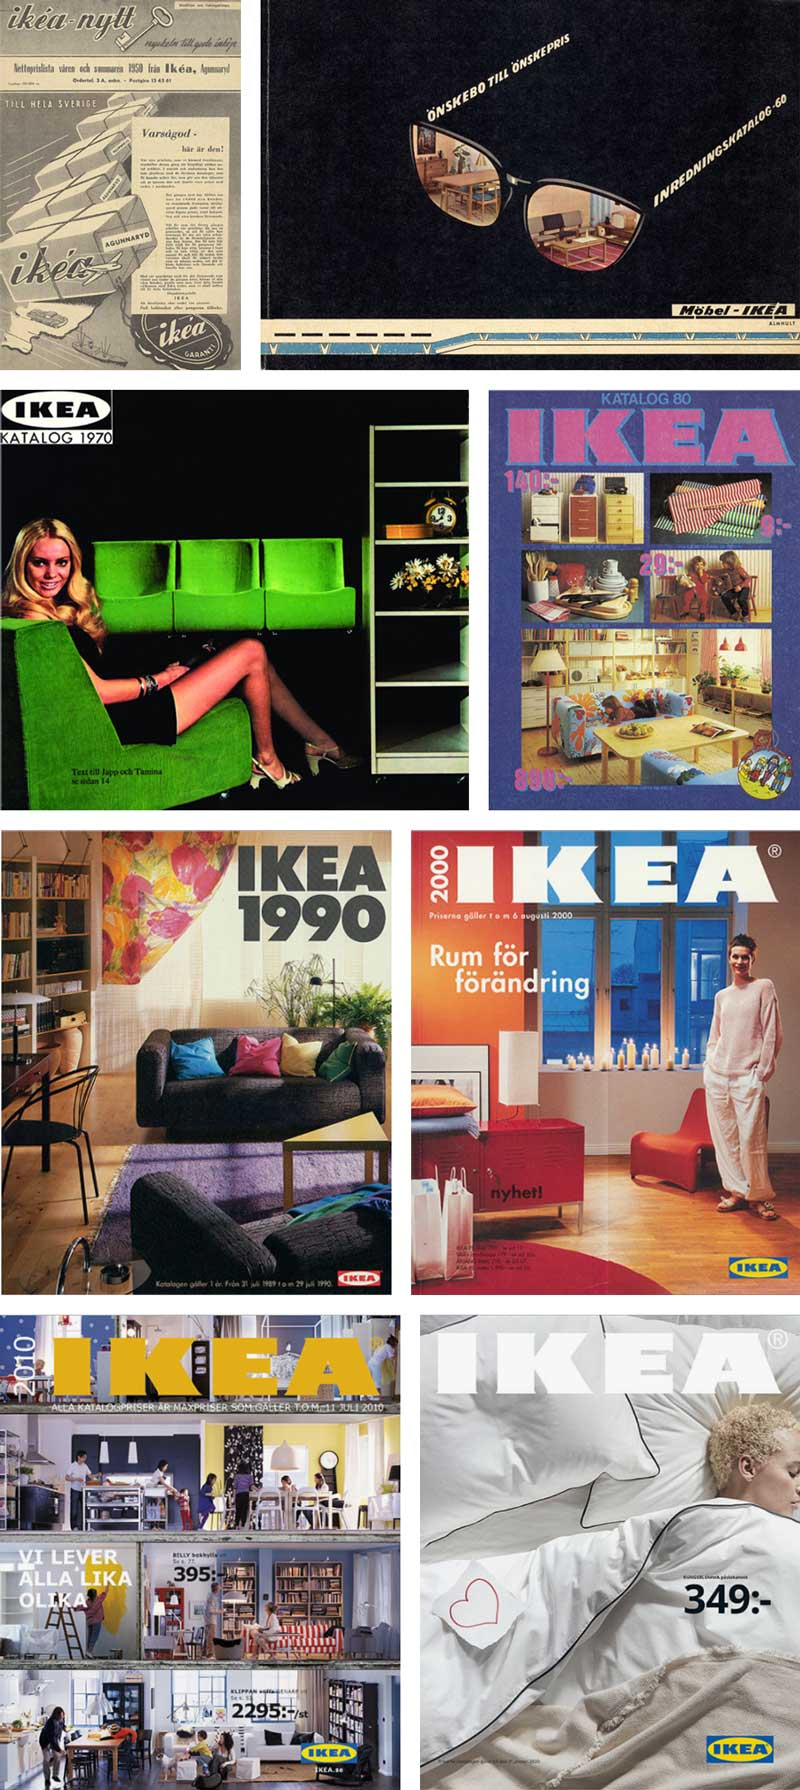 Ikea catalog covers from 1950 to 2020